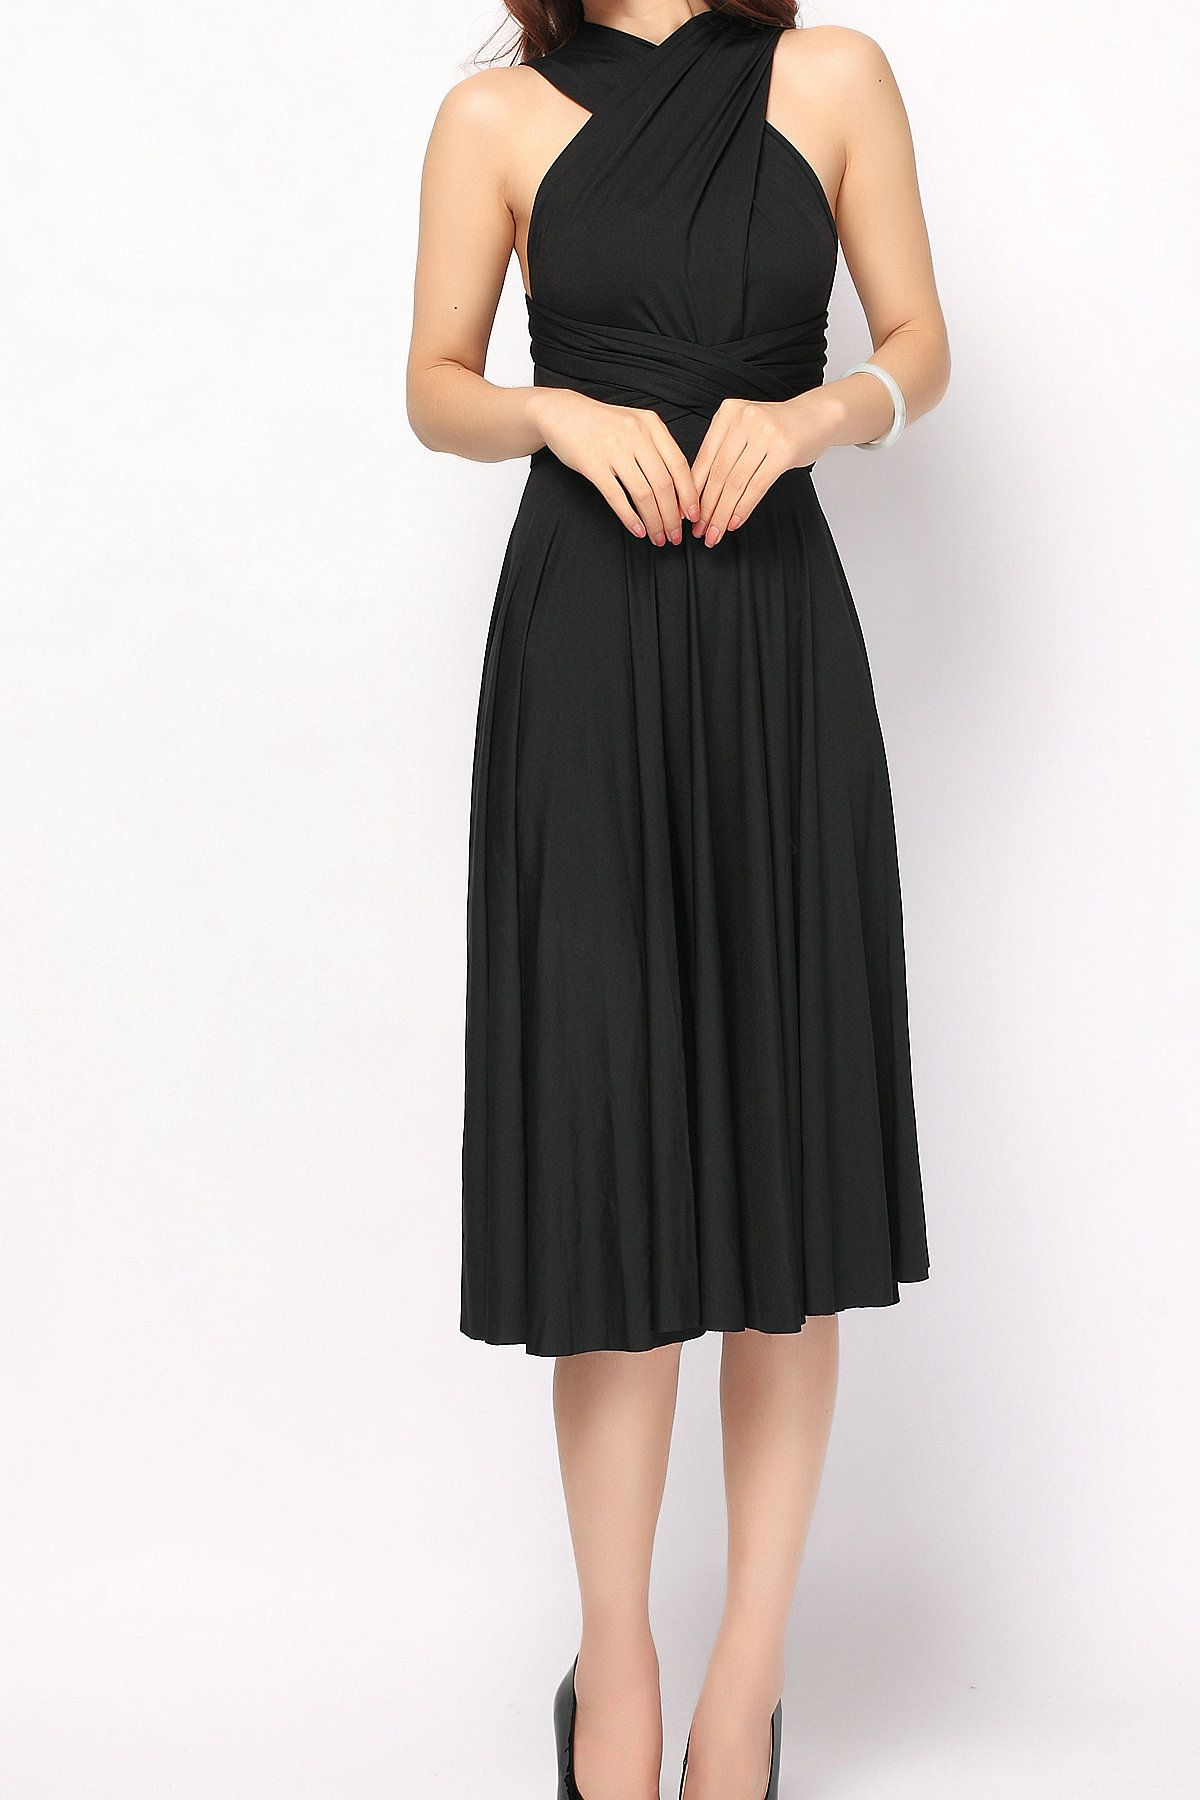 Black convertible dress. Perfect for travel. Many dresses in one!